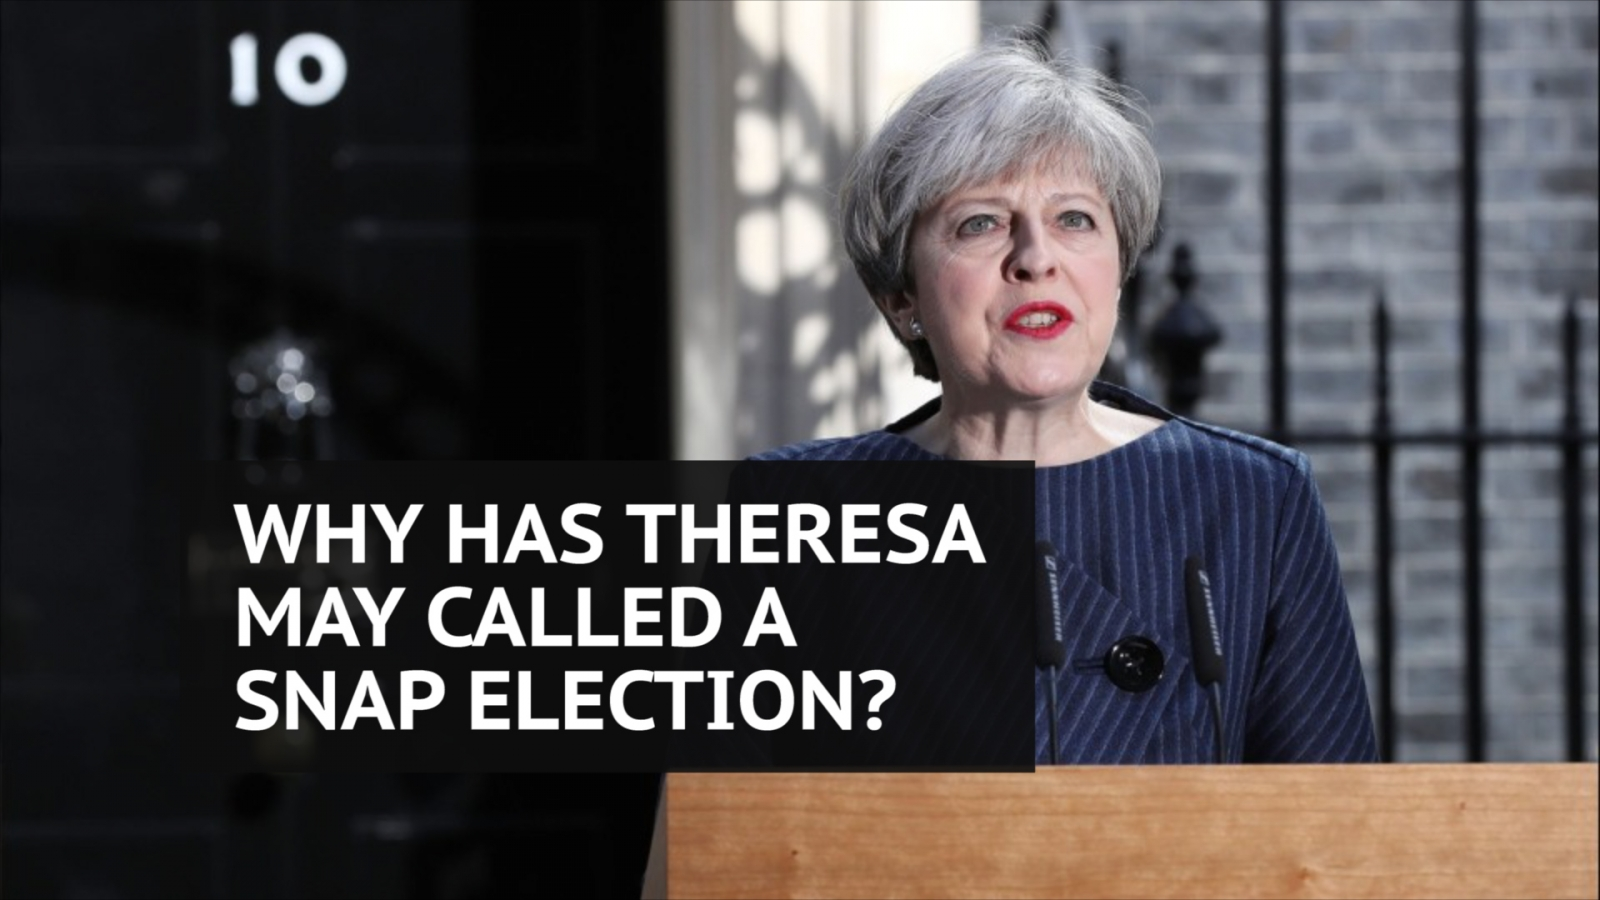 Why has Theresa May called an early general election?